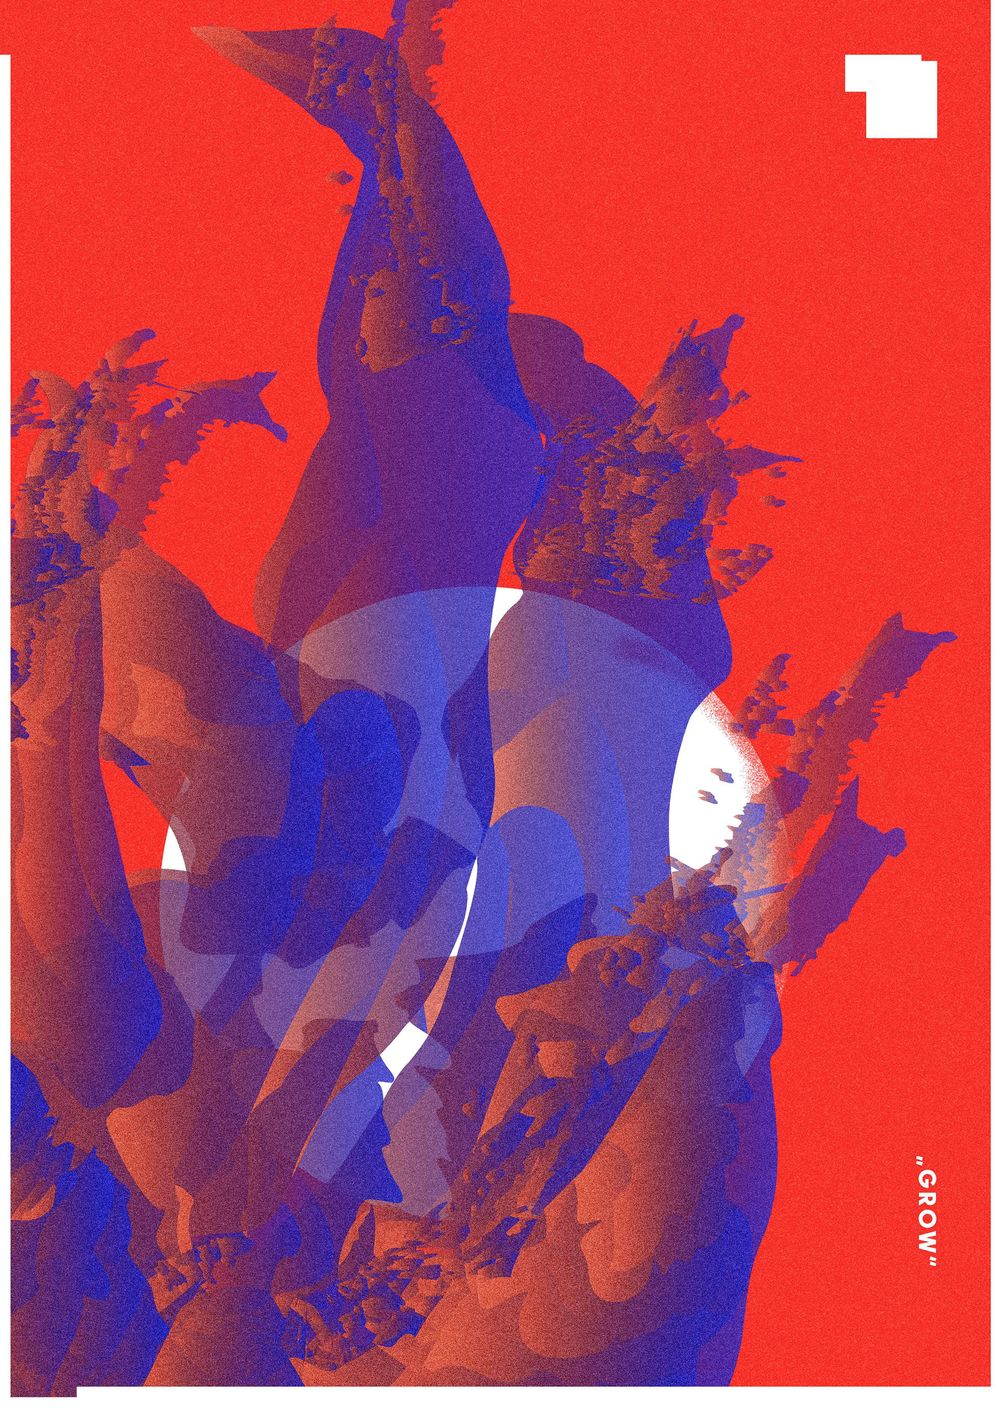 Experimental Poster Design - image 2 - student project